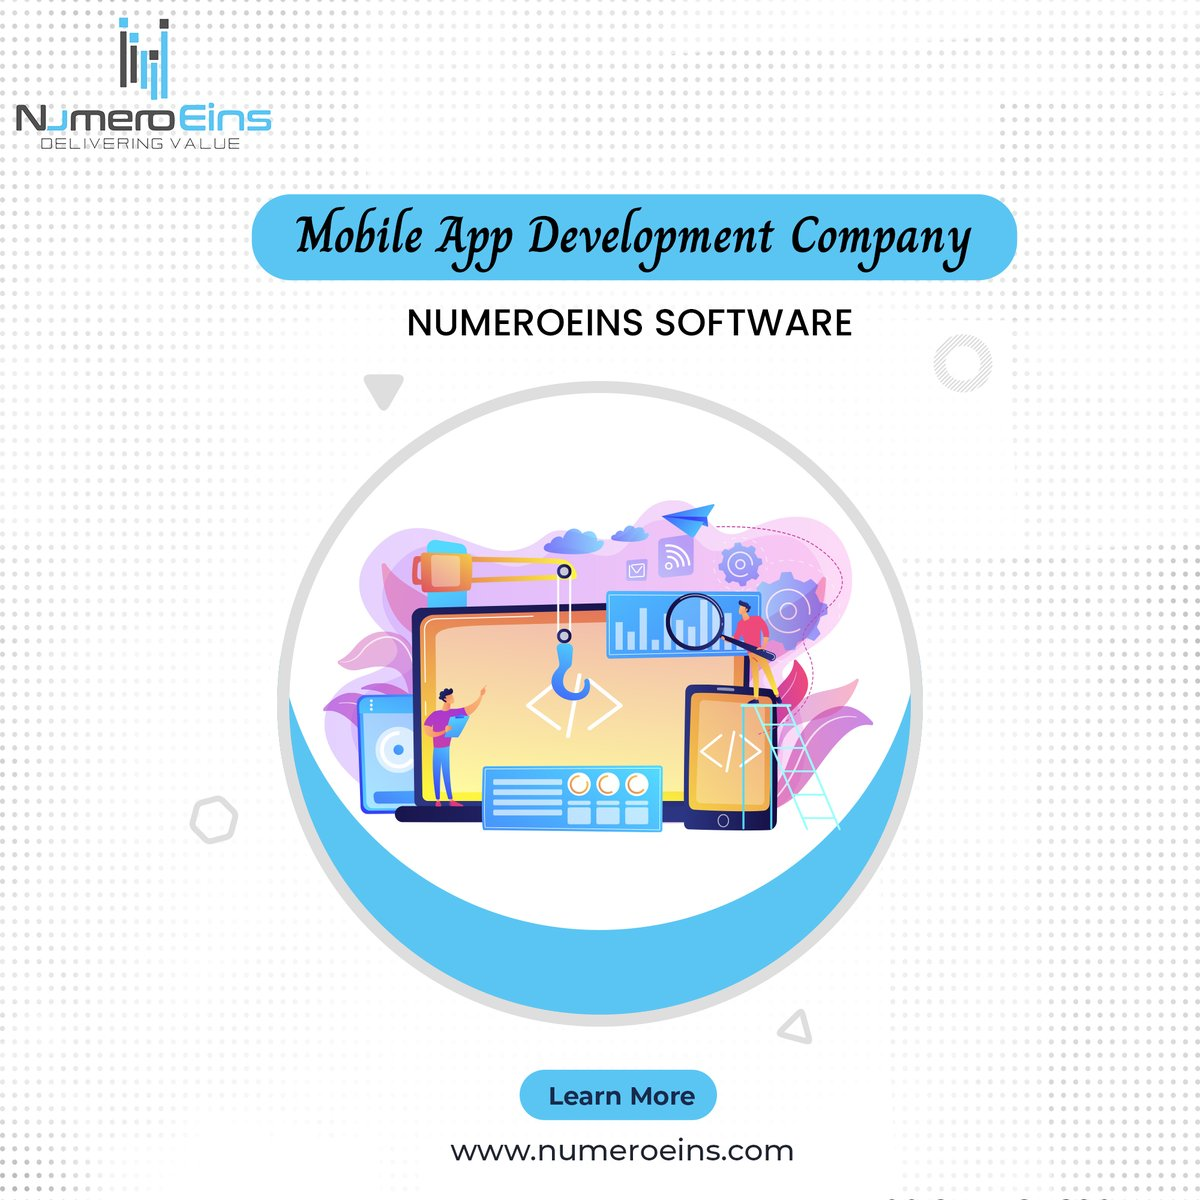 Increase your business conversions and visibility with a mobile app developed by Numeroeins - A Top-Rated mobile app development company, offering custom solutions of react native, flutter#mobileapp #appDevelopment #ios #appdevelopment #numeroeins